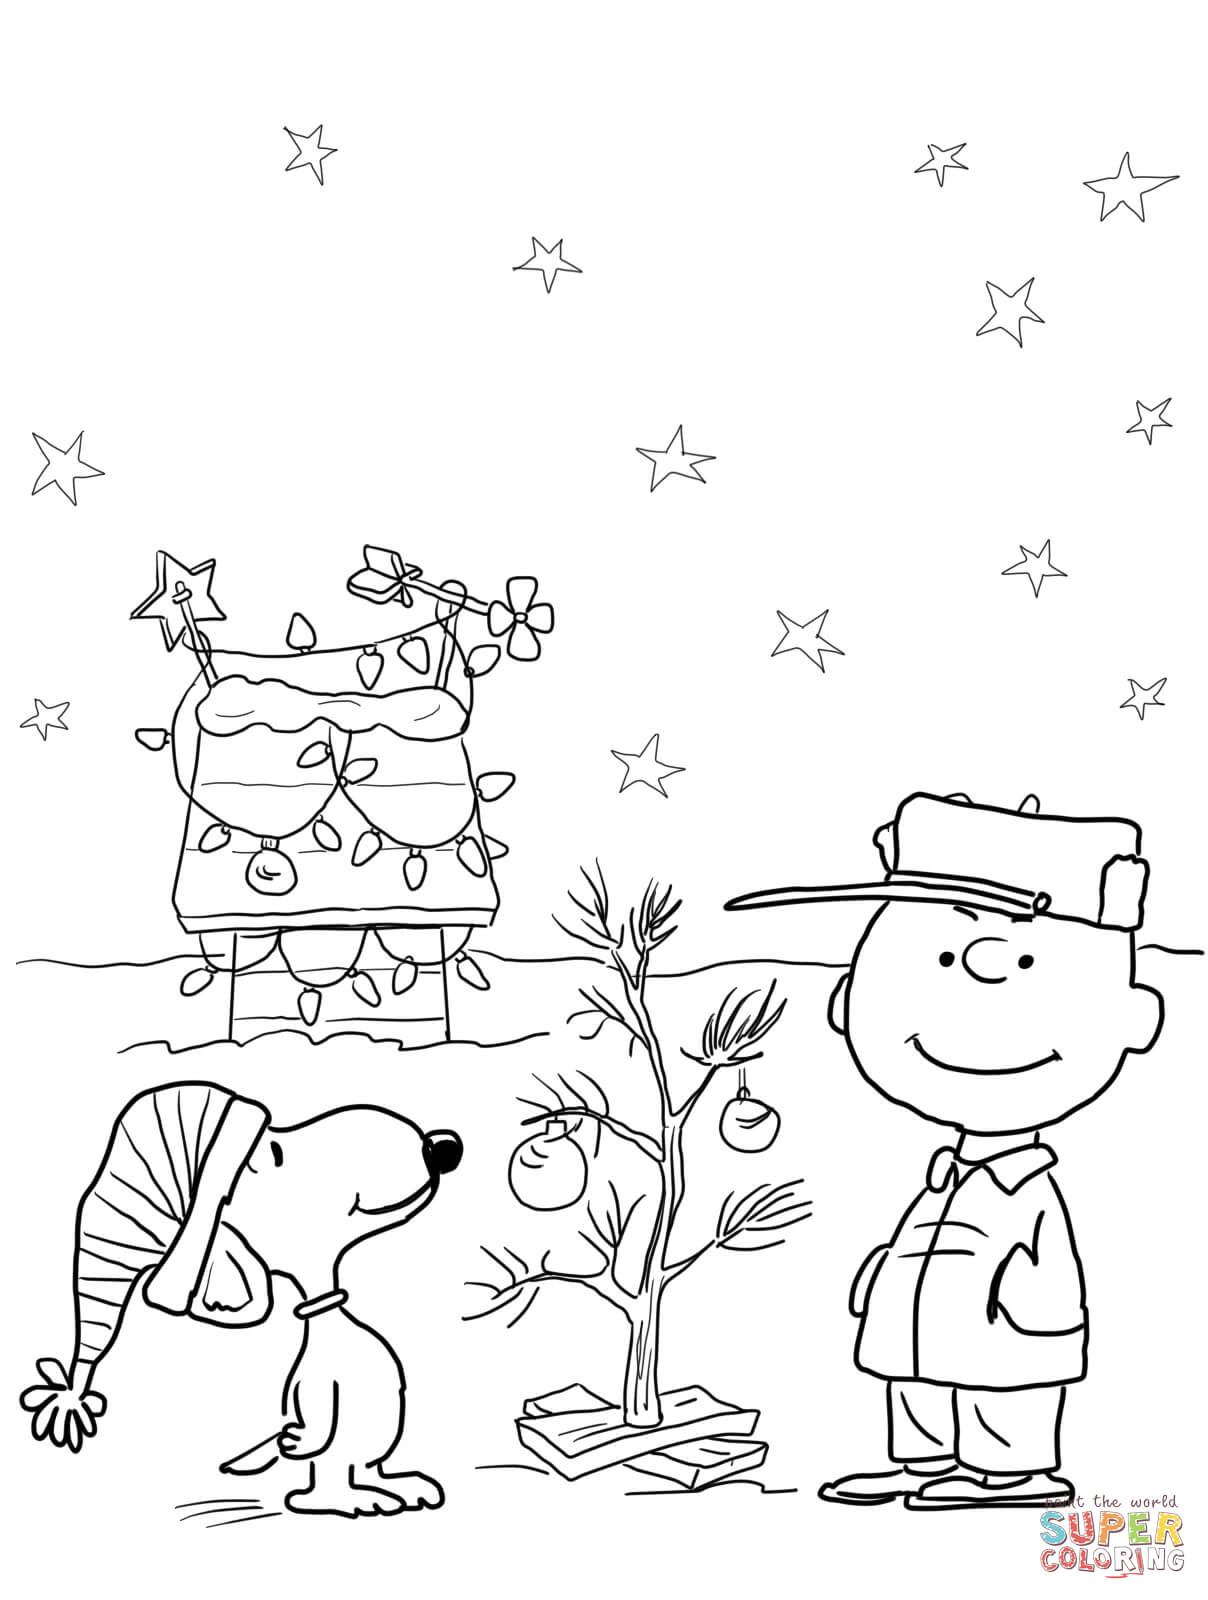 Realistic Christmas Coloring Pages With Charlie Brown Page Free Printable